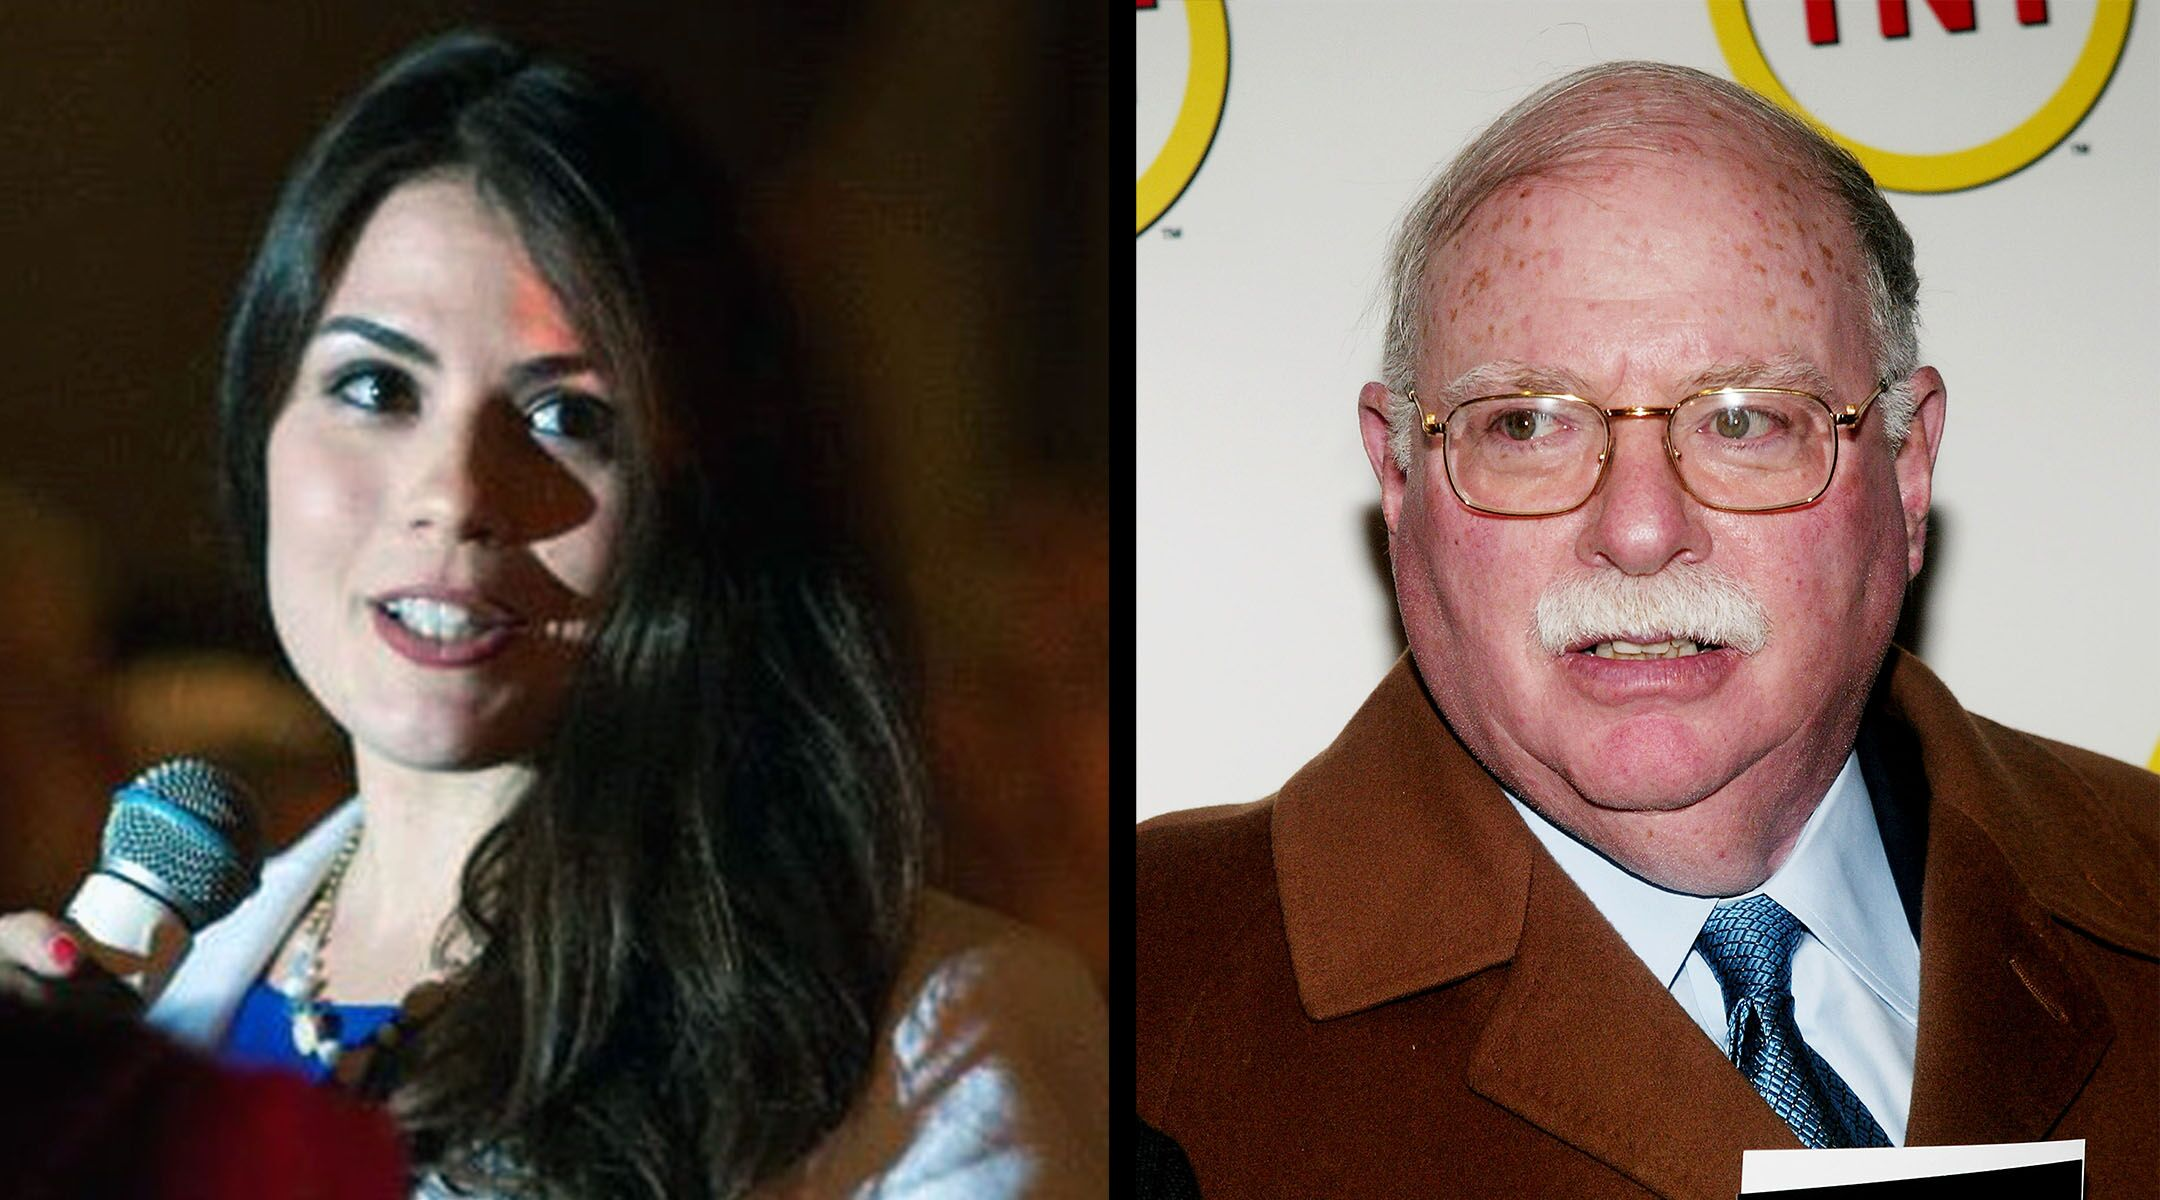 Michael Steinhardt sexually harassed me. I spent the next 4 years trying to hold him accountable.